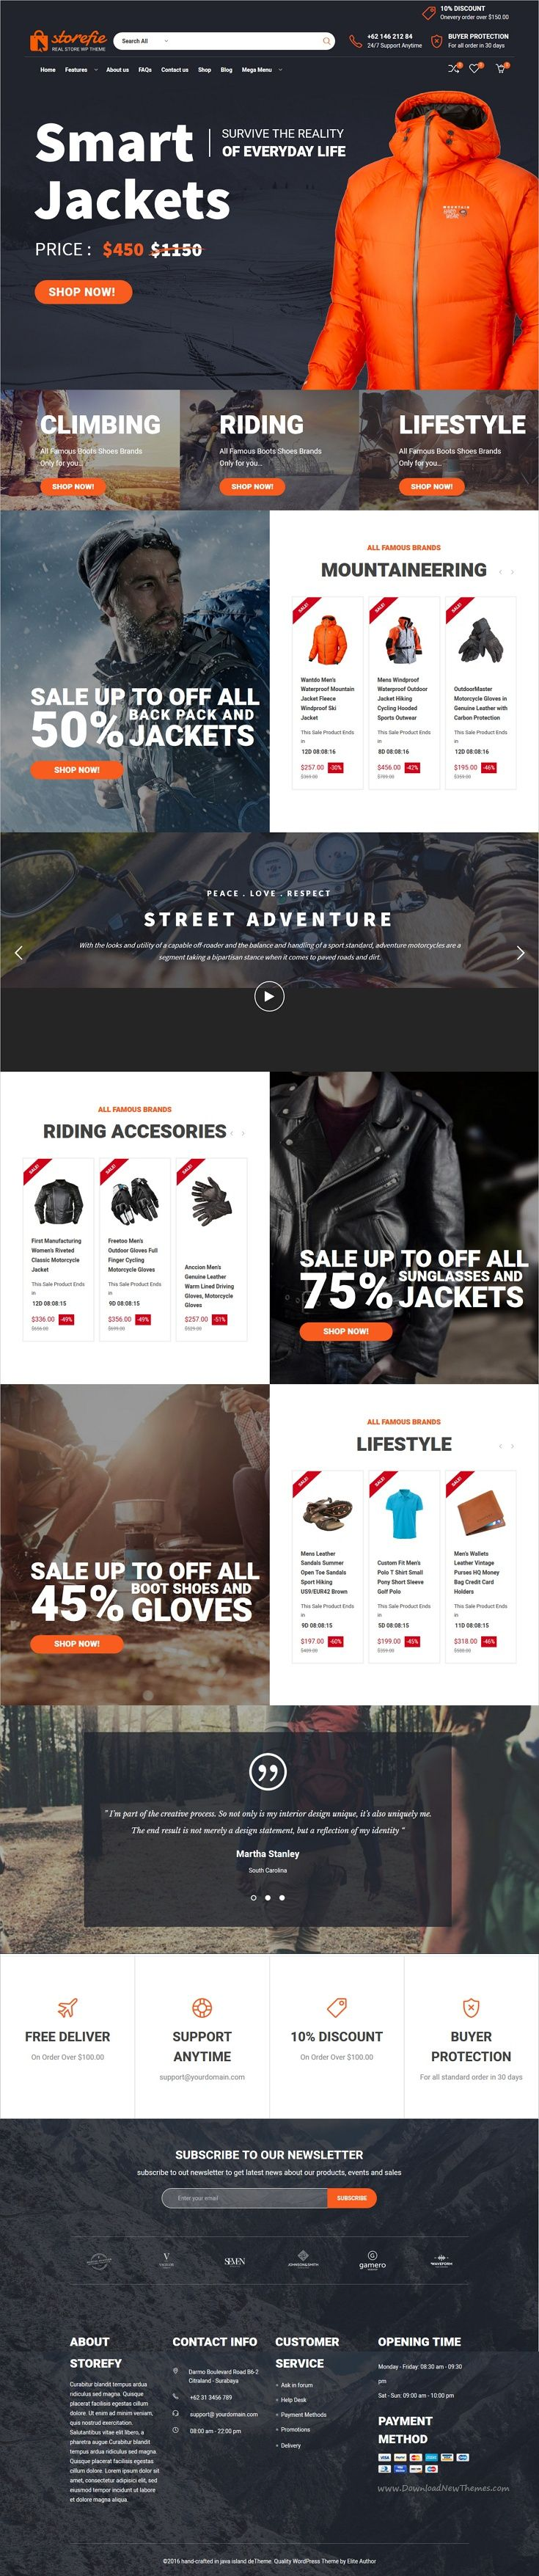 Storefie is a wonderful responsive #WordPress theme for high #conversion #eCommerce website download now➩ https://themeforest.net/item/storefie-high-converting-ecommerce-wordpress-theme/18908263?ref=Datasata